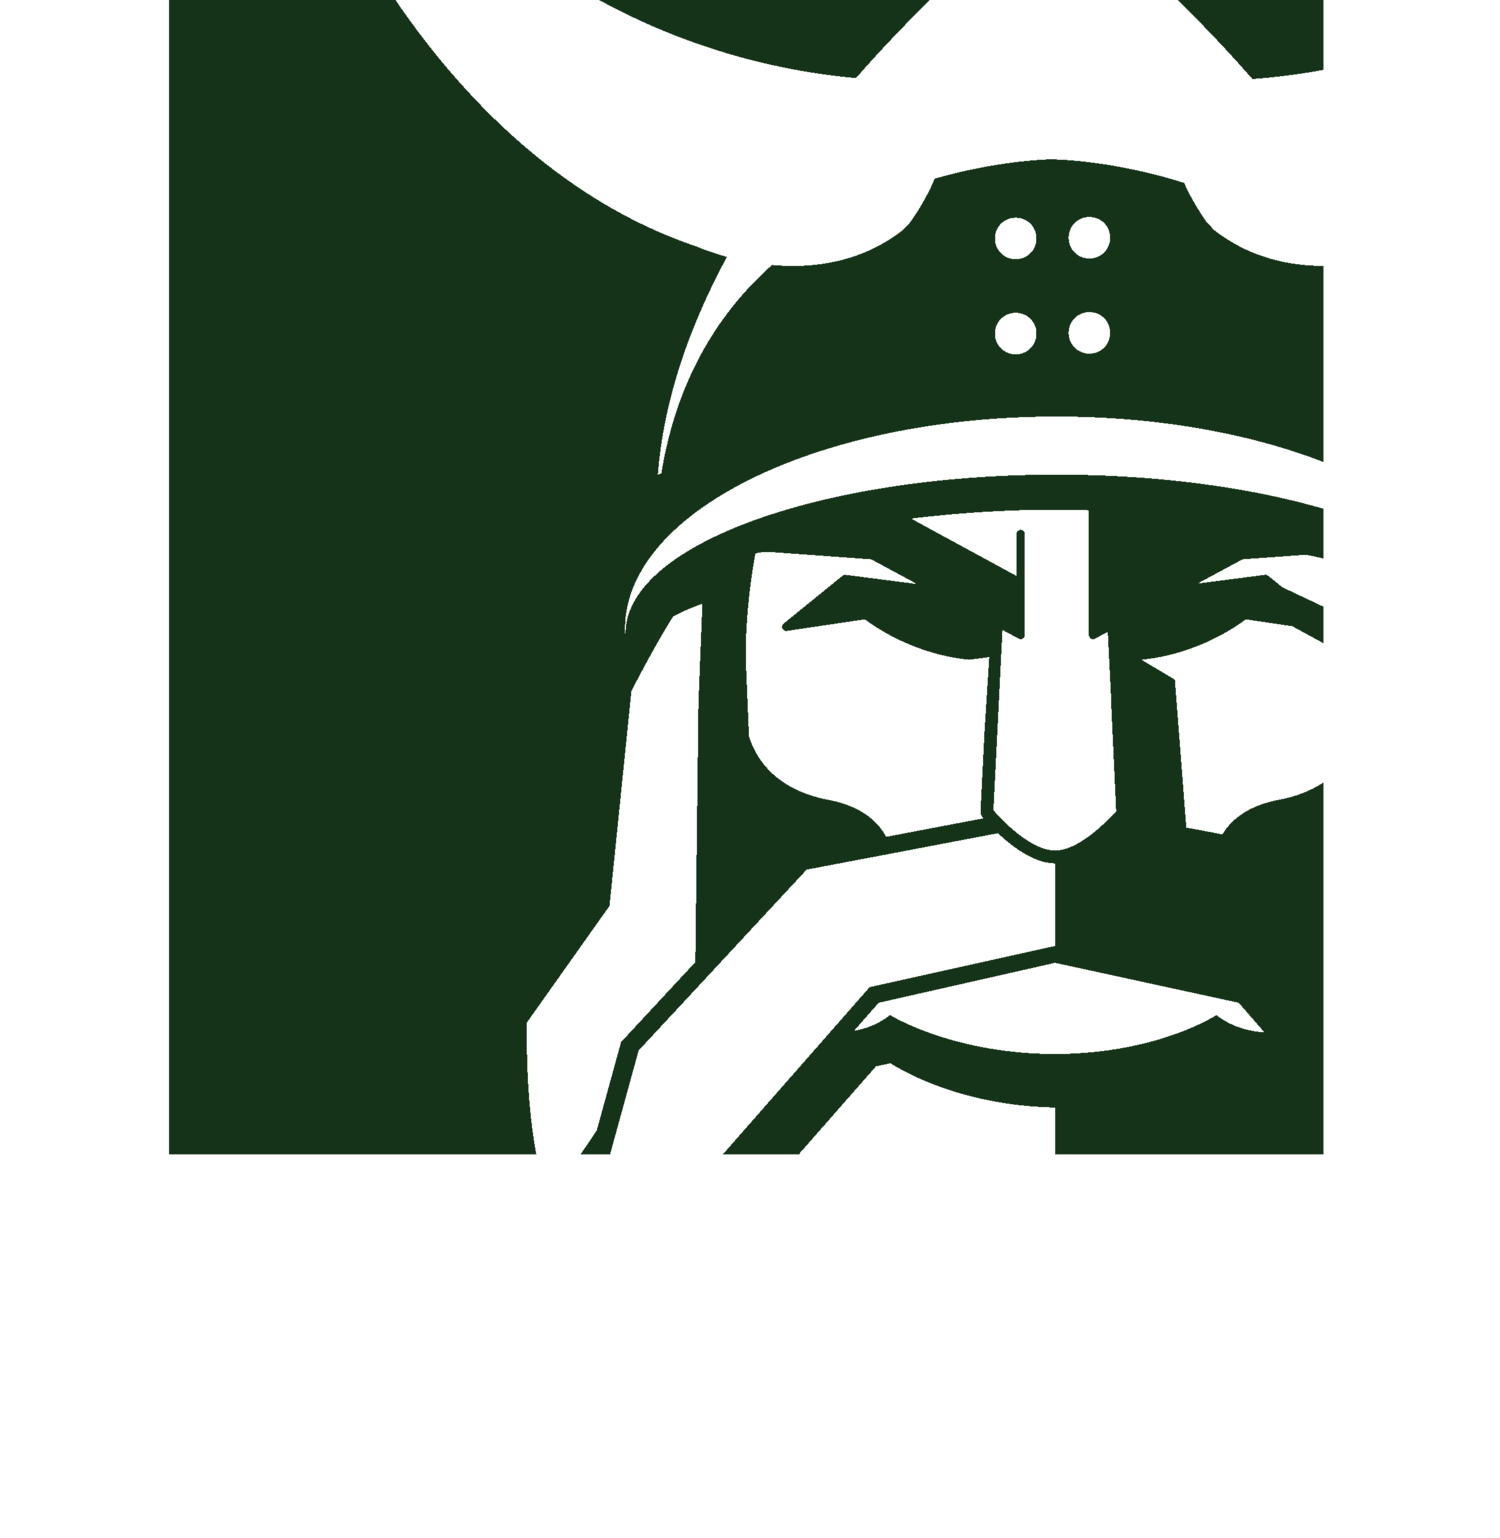 Sönnungr Viking Co.